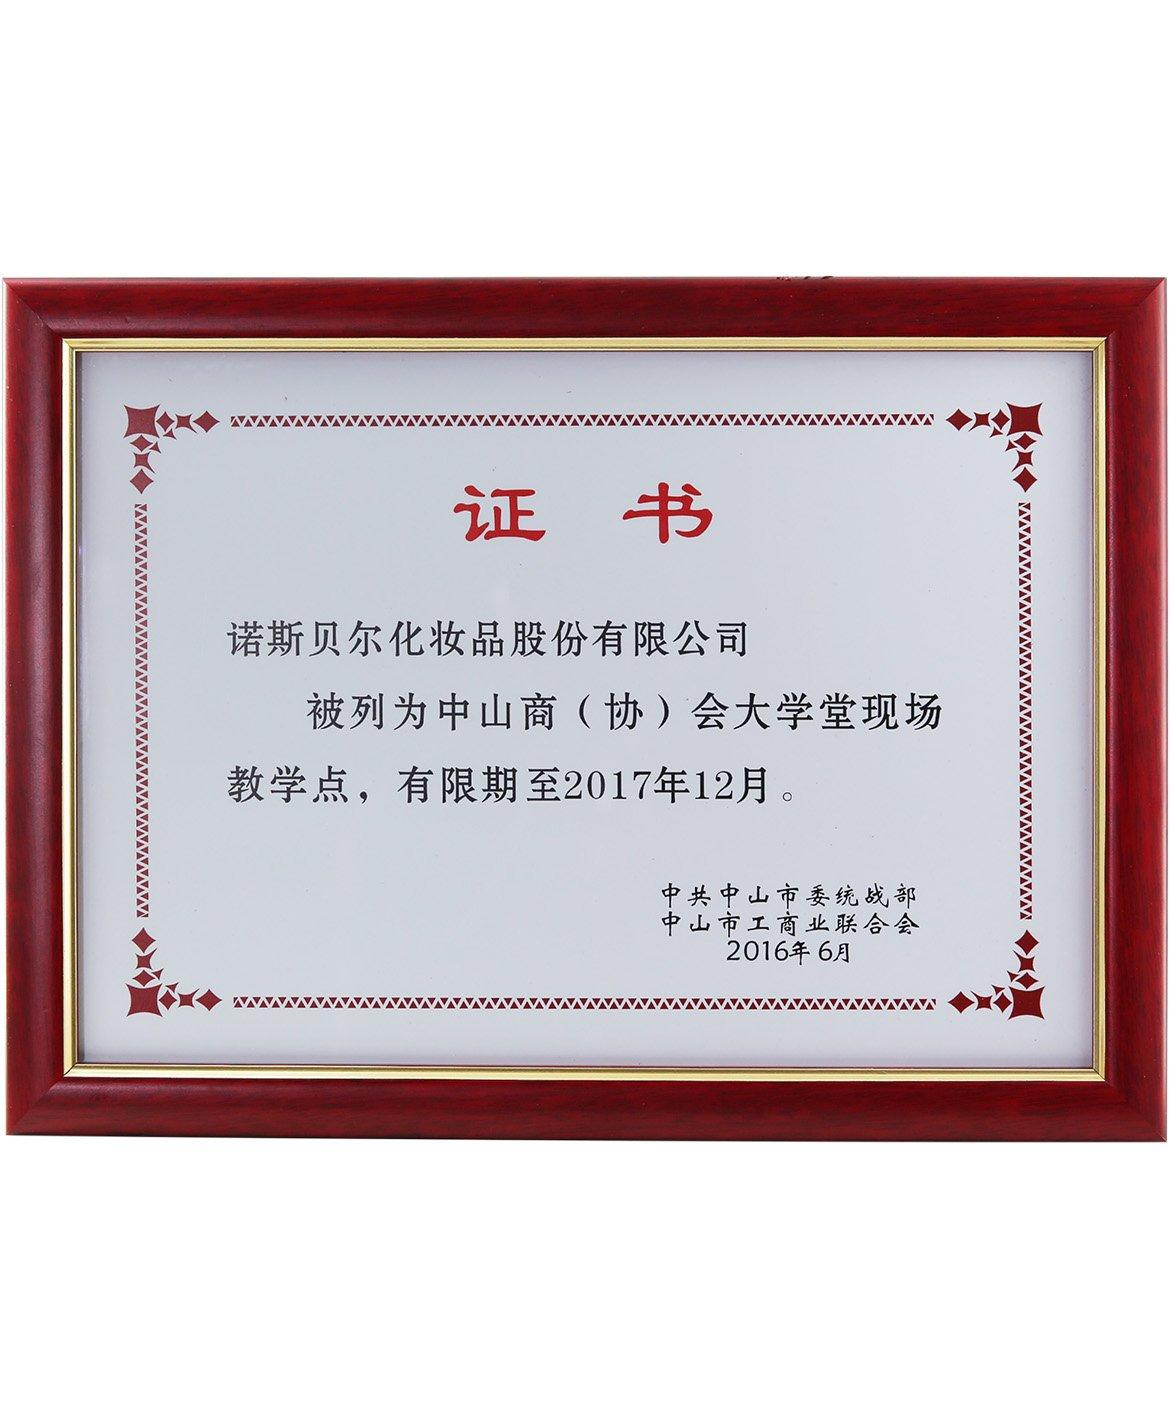 Zhongshan (Association) Chamber of Commerce On-site Teaching Point certificate